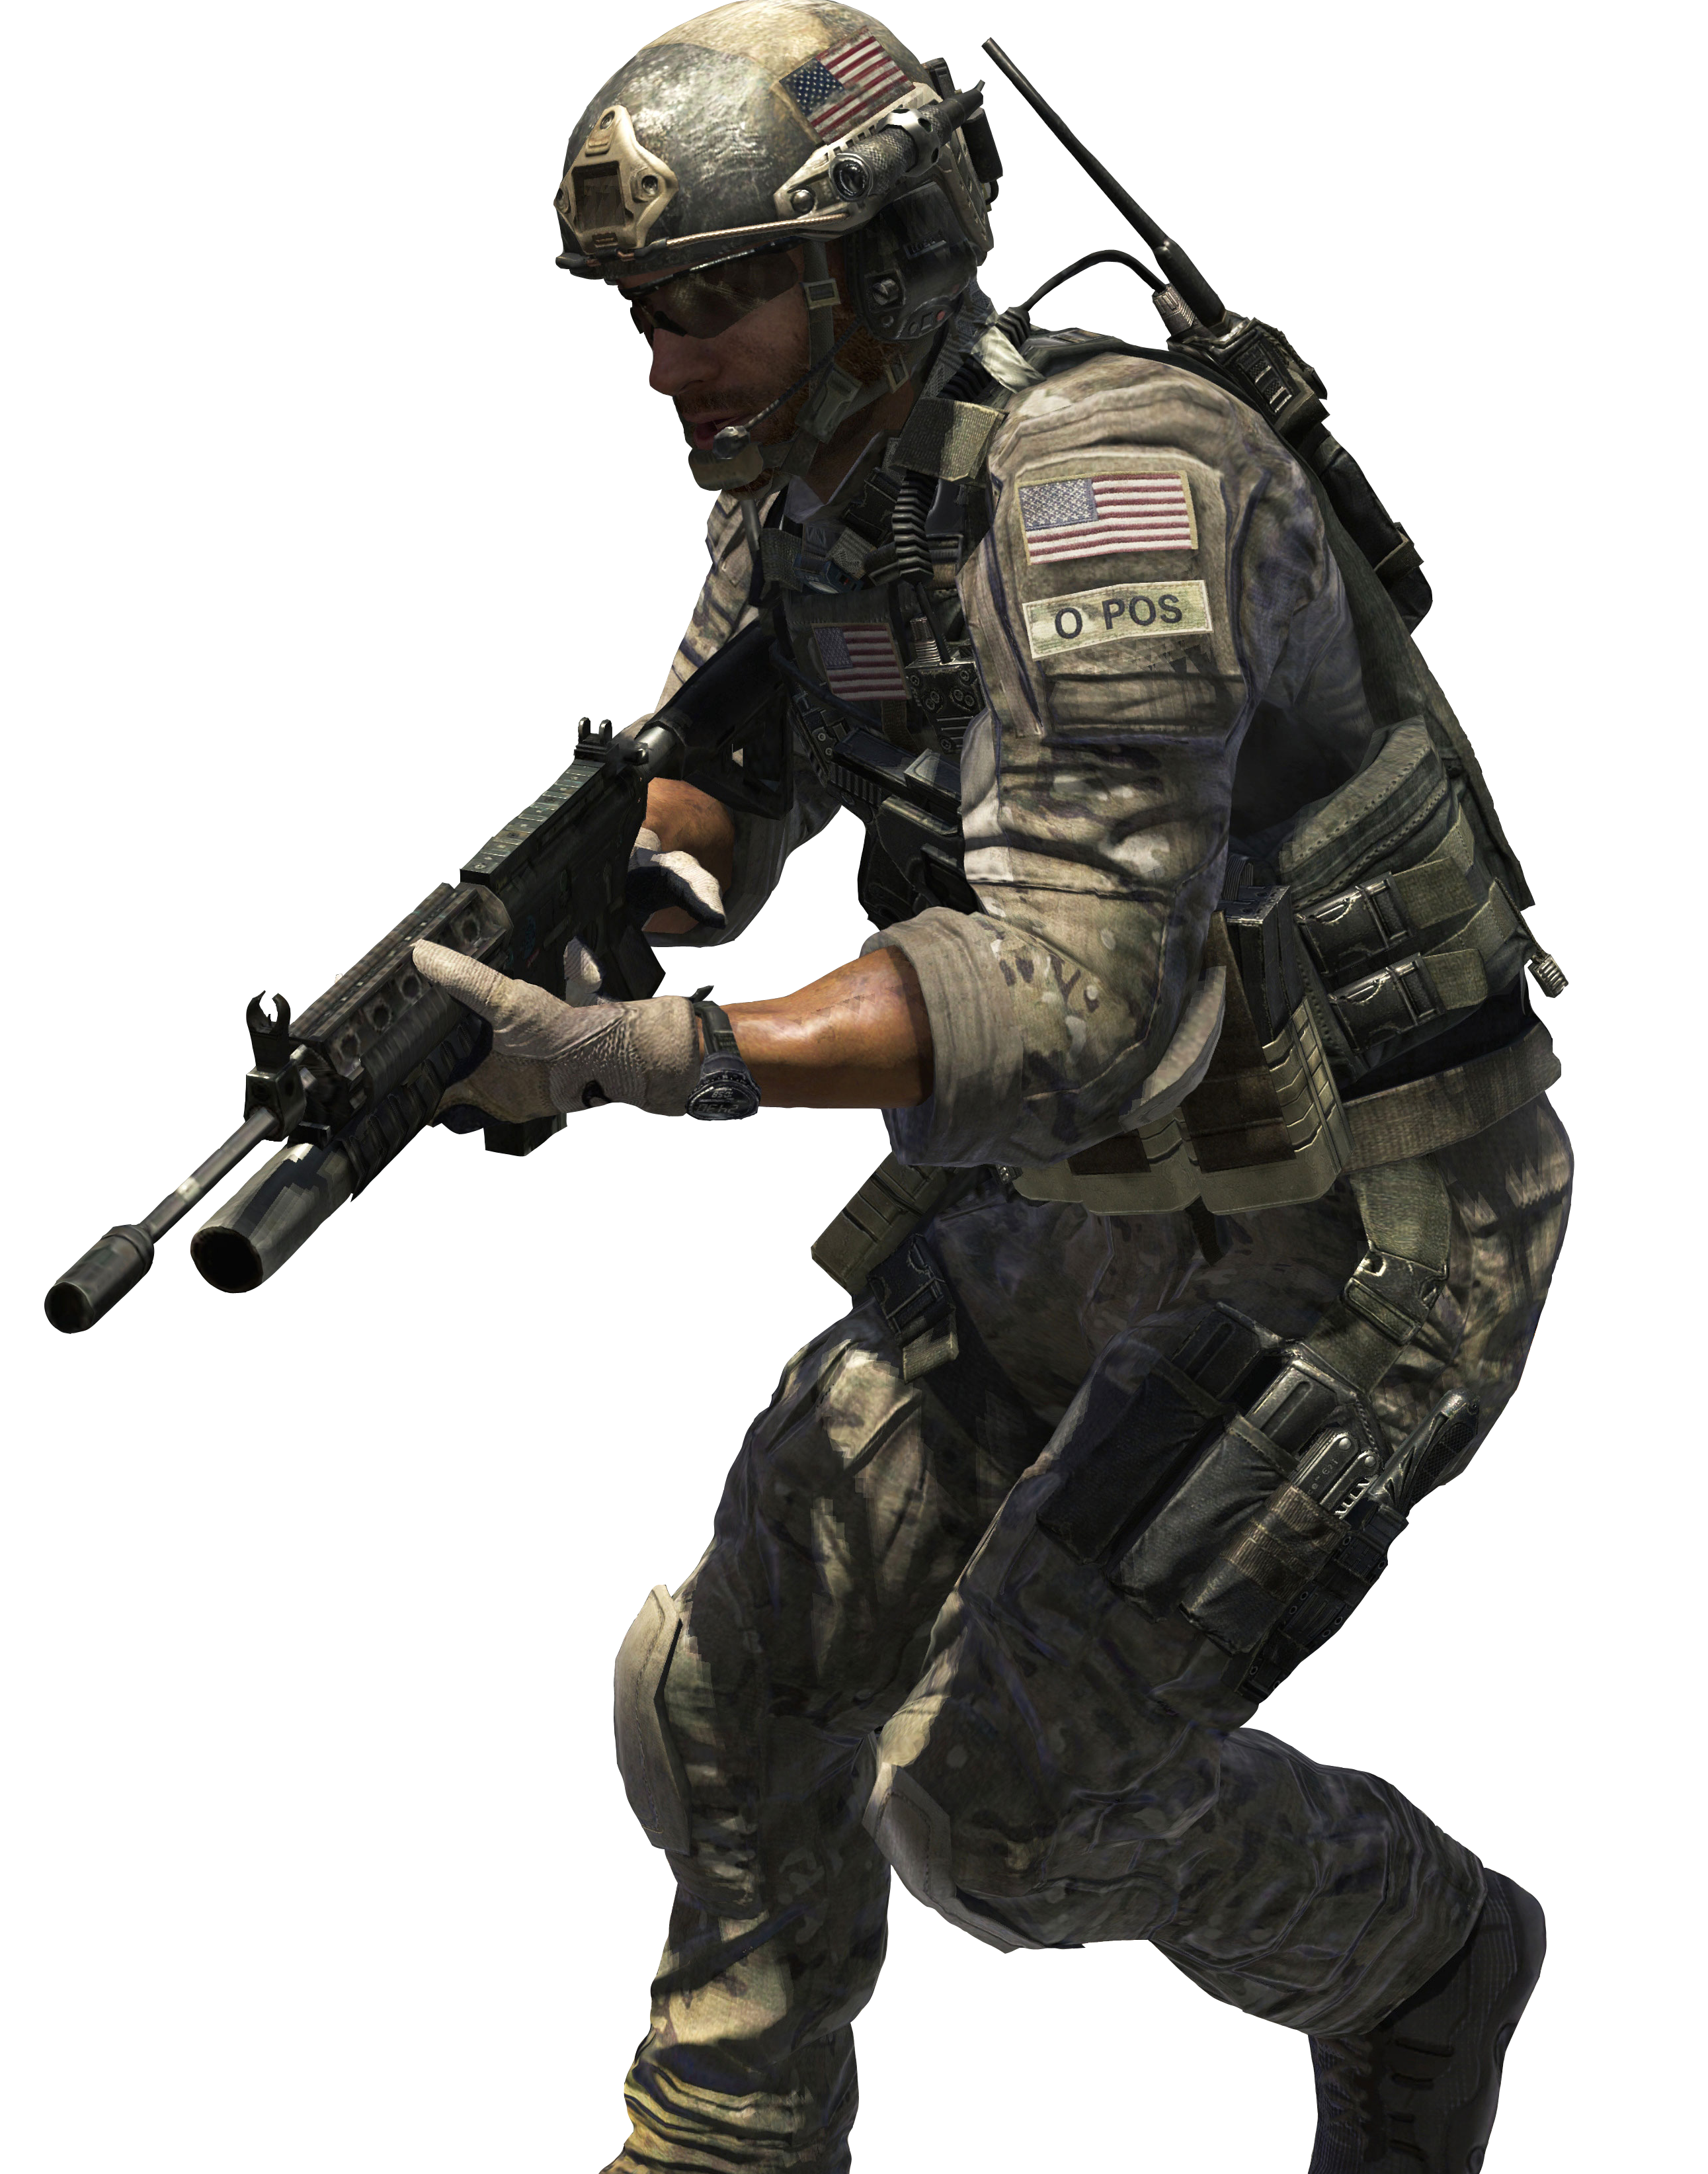 cod 4 character png